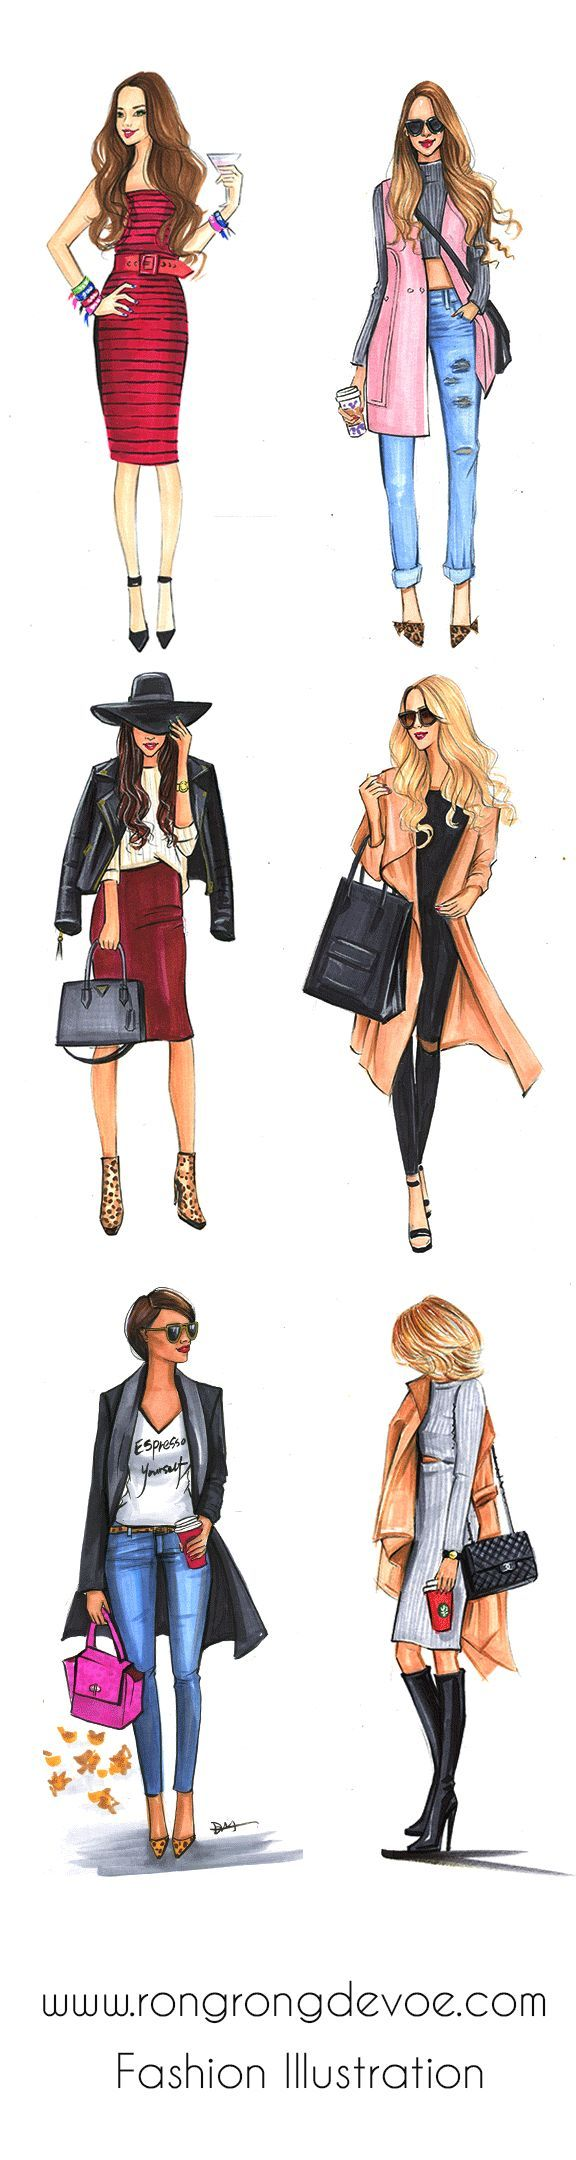 Fashion illustrations of street style fashionistas…